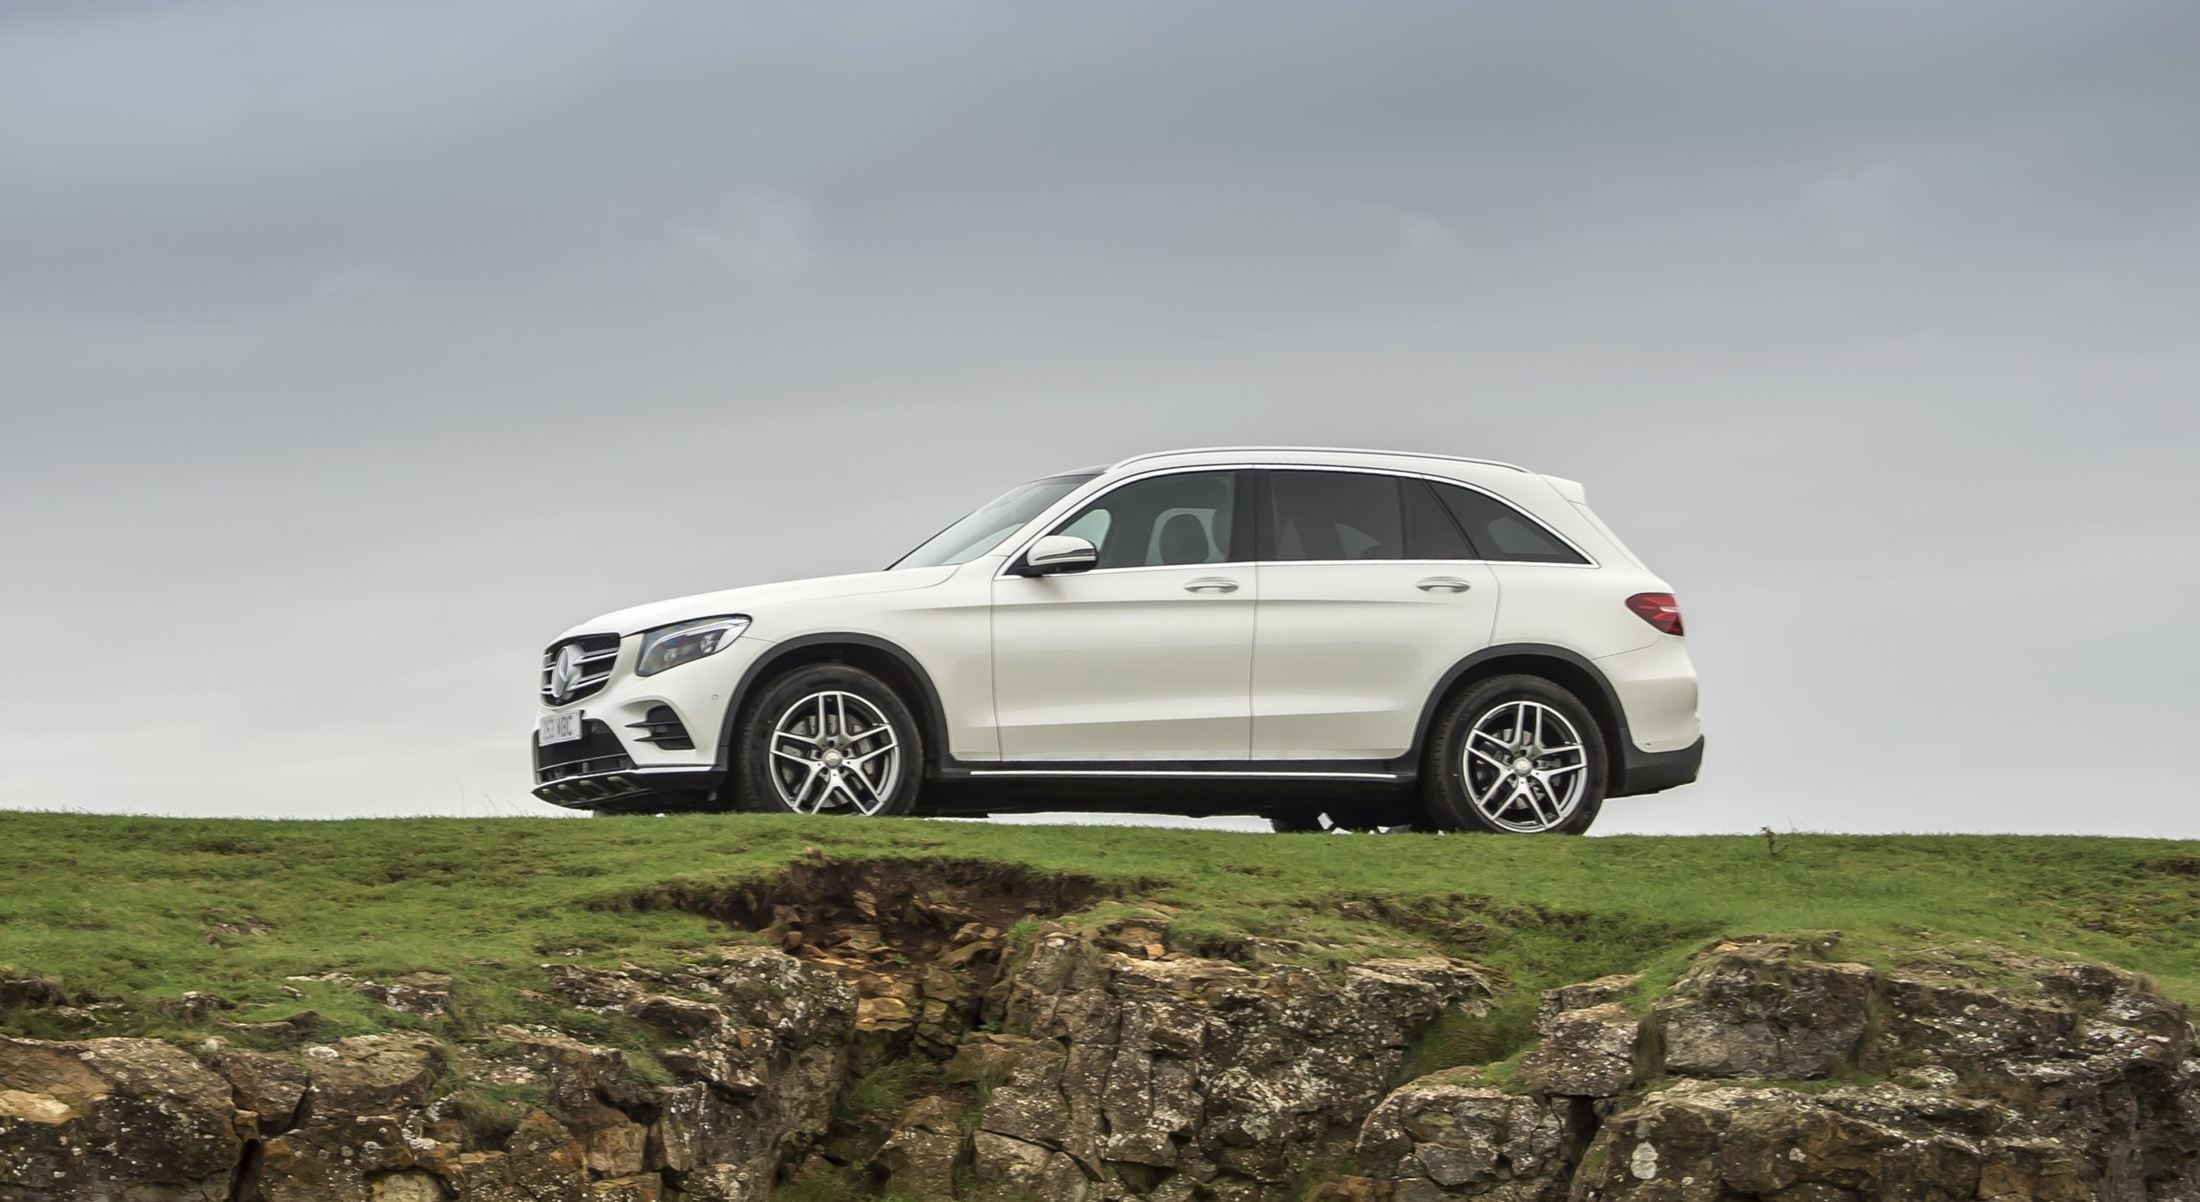 2016 mercedes benz glc300 air sprung crossover in us dealers now 45k pricing rwd or 4matic. Black Bedroom Furniture Sets. Home Design Ideas